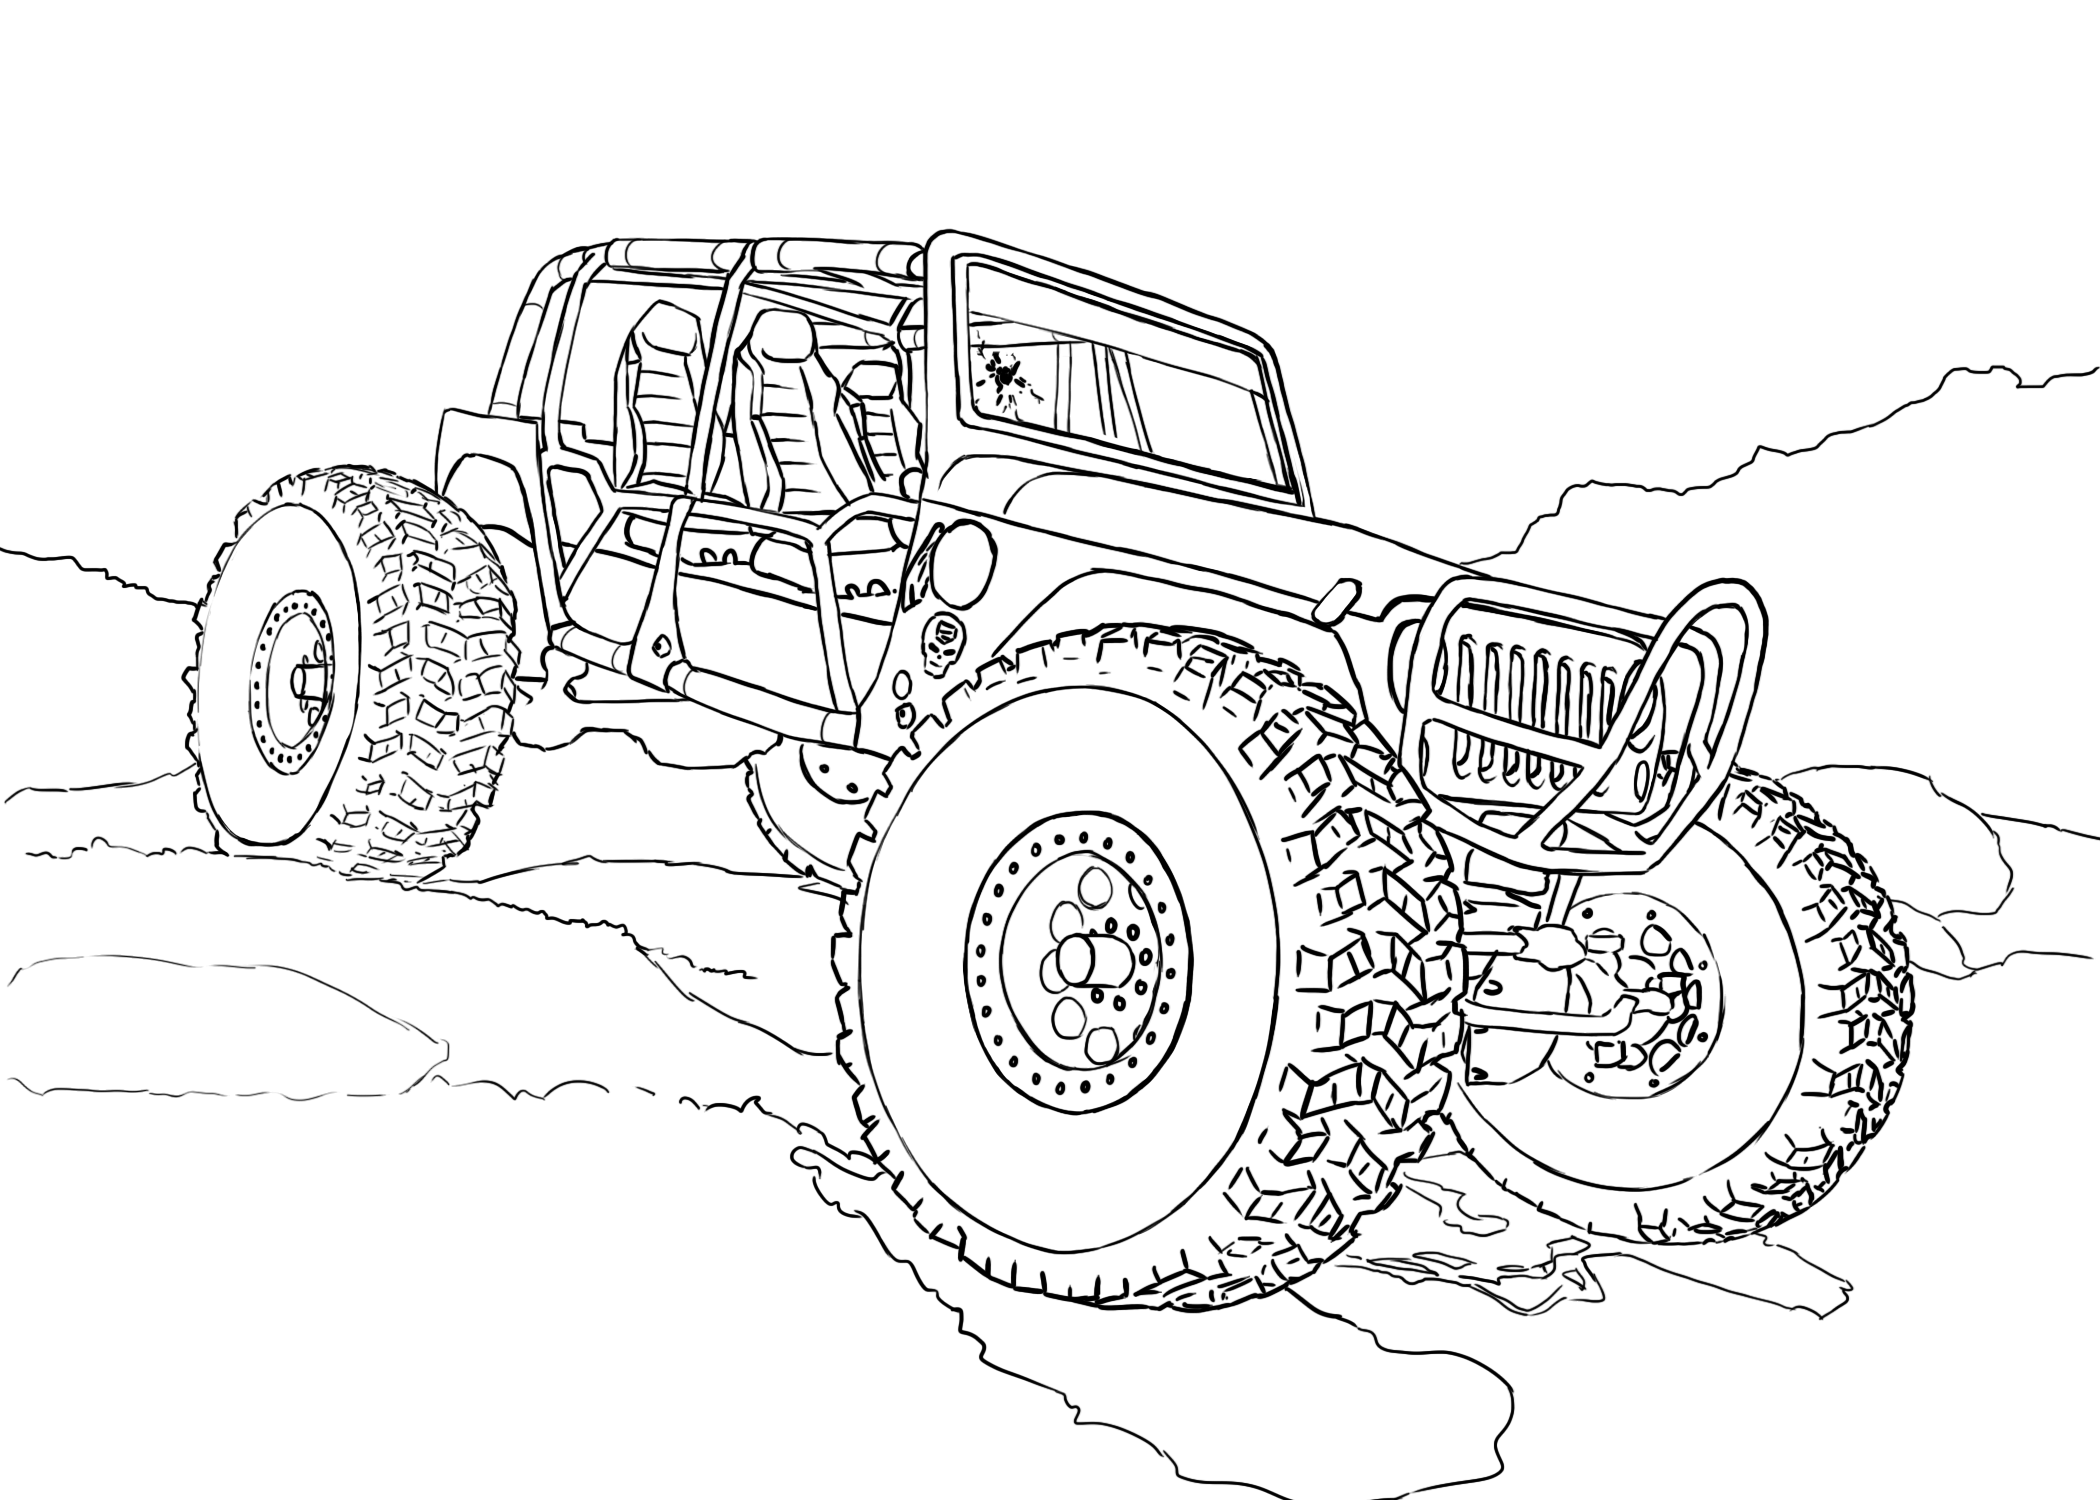 rc car coloring pages rc car drawing at getdrawings free download car pages coloring rc